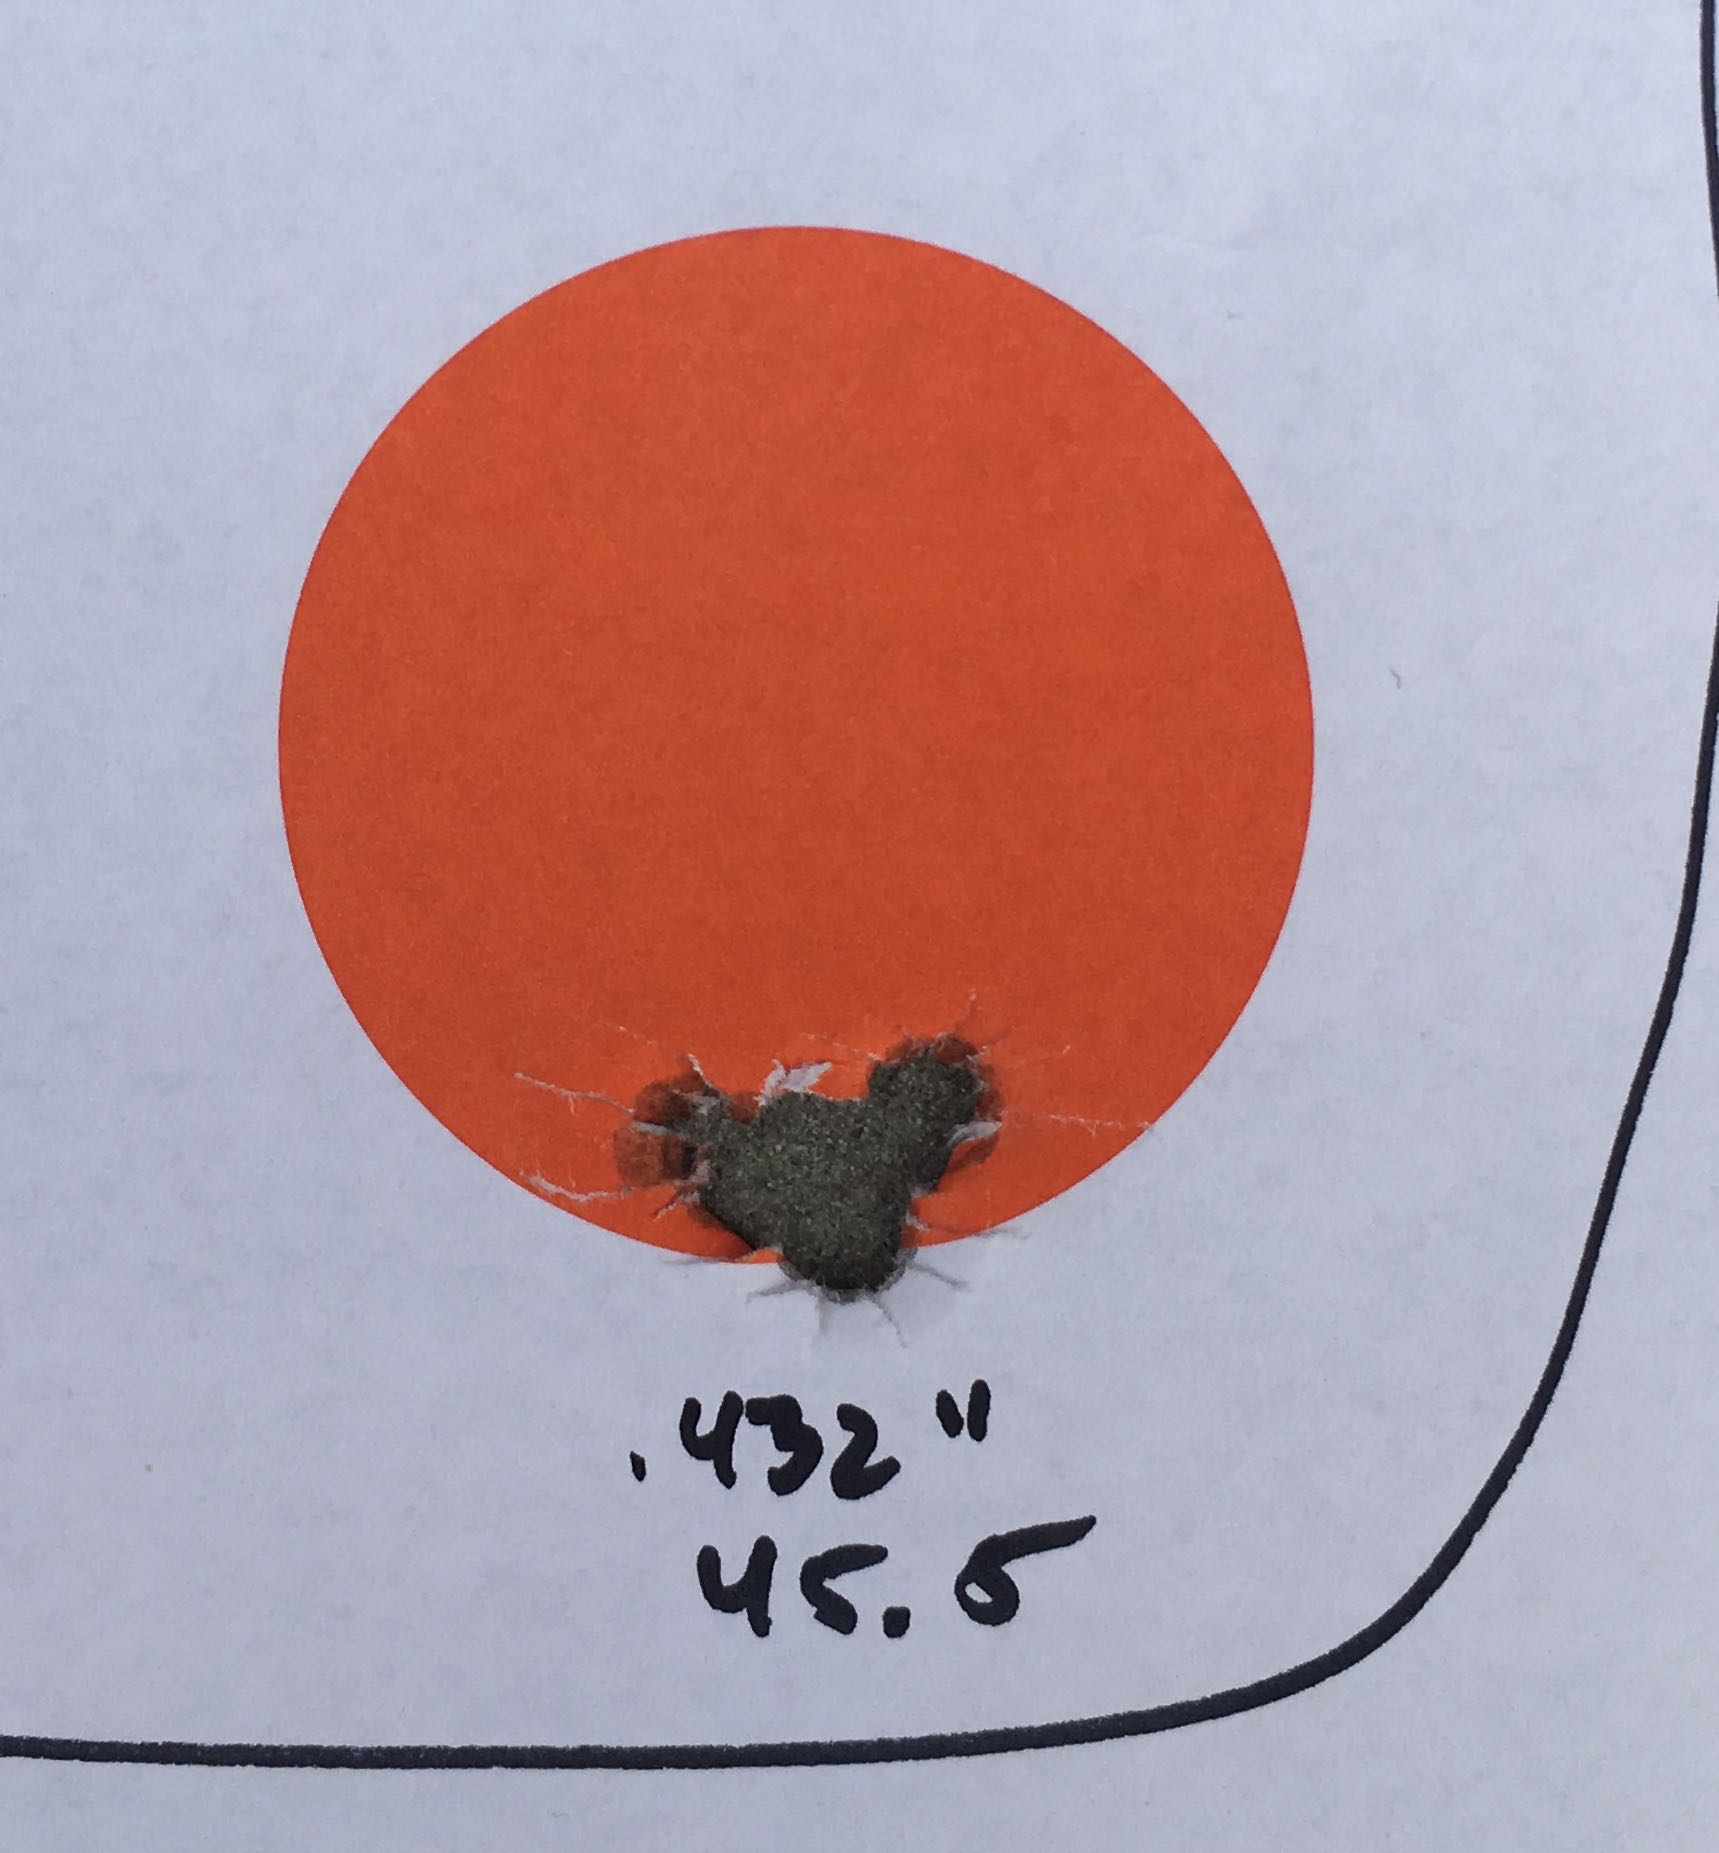 308-win-45-5-varget-5-shots-at-100-yards